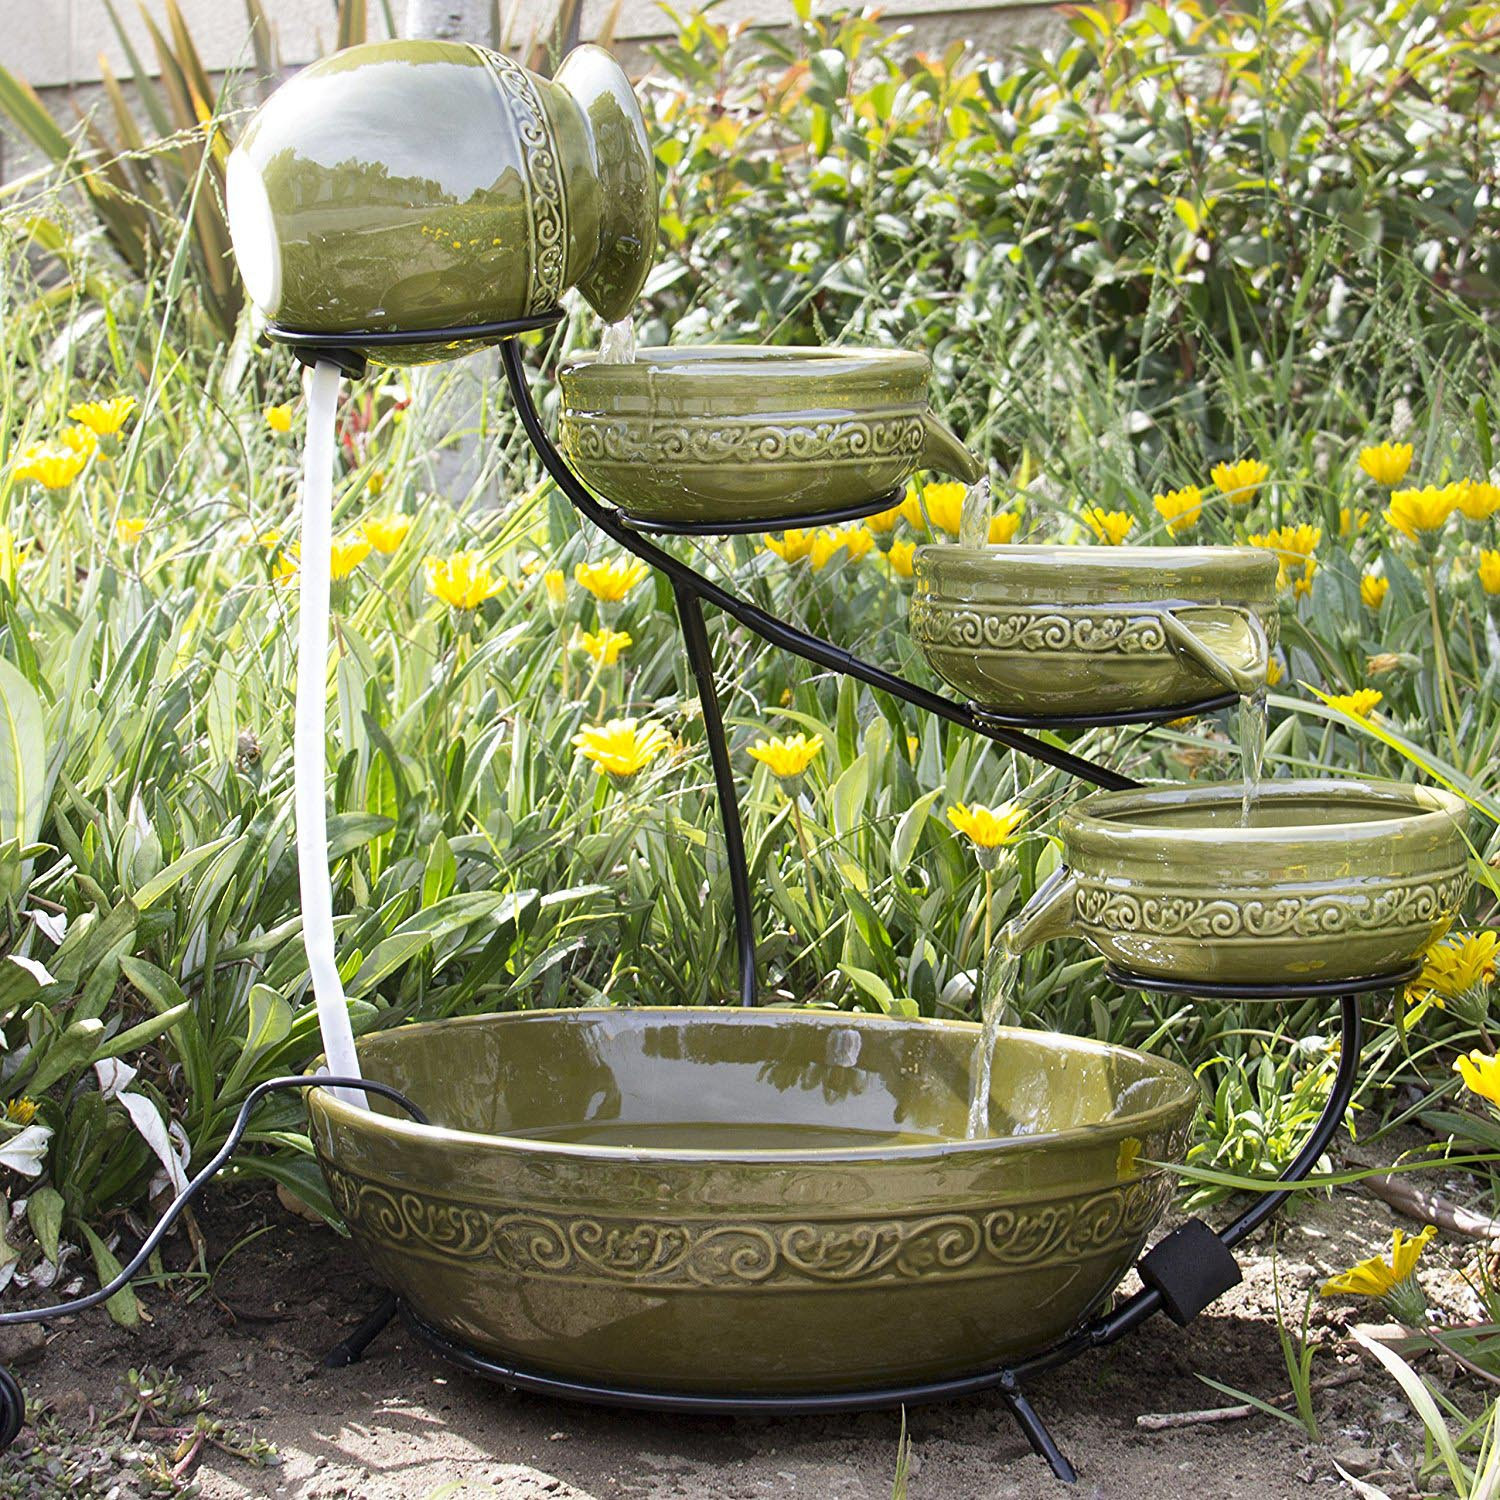 Four-tier waterfall ceramic birdbath.